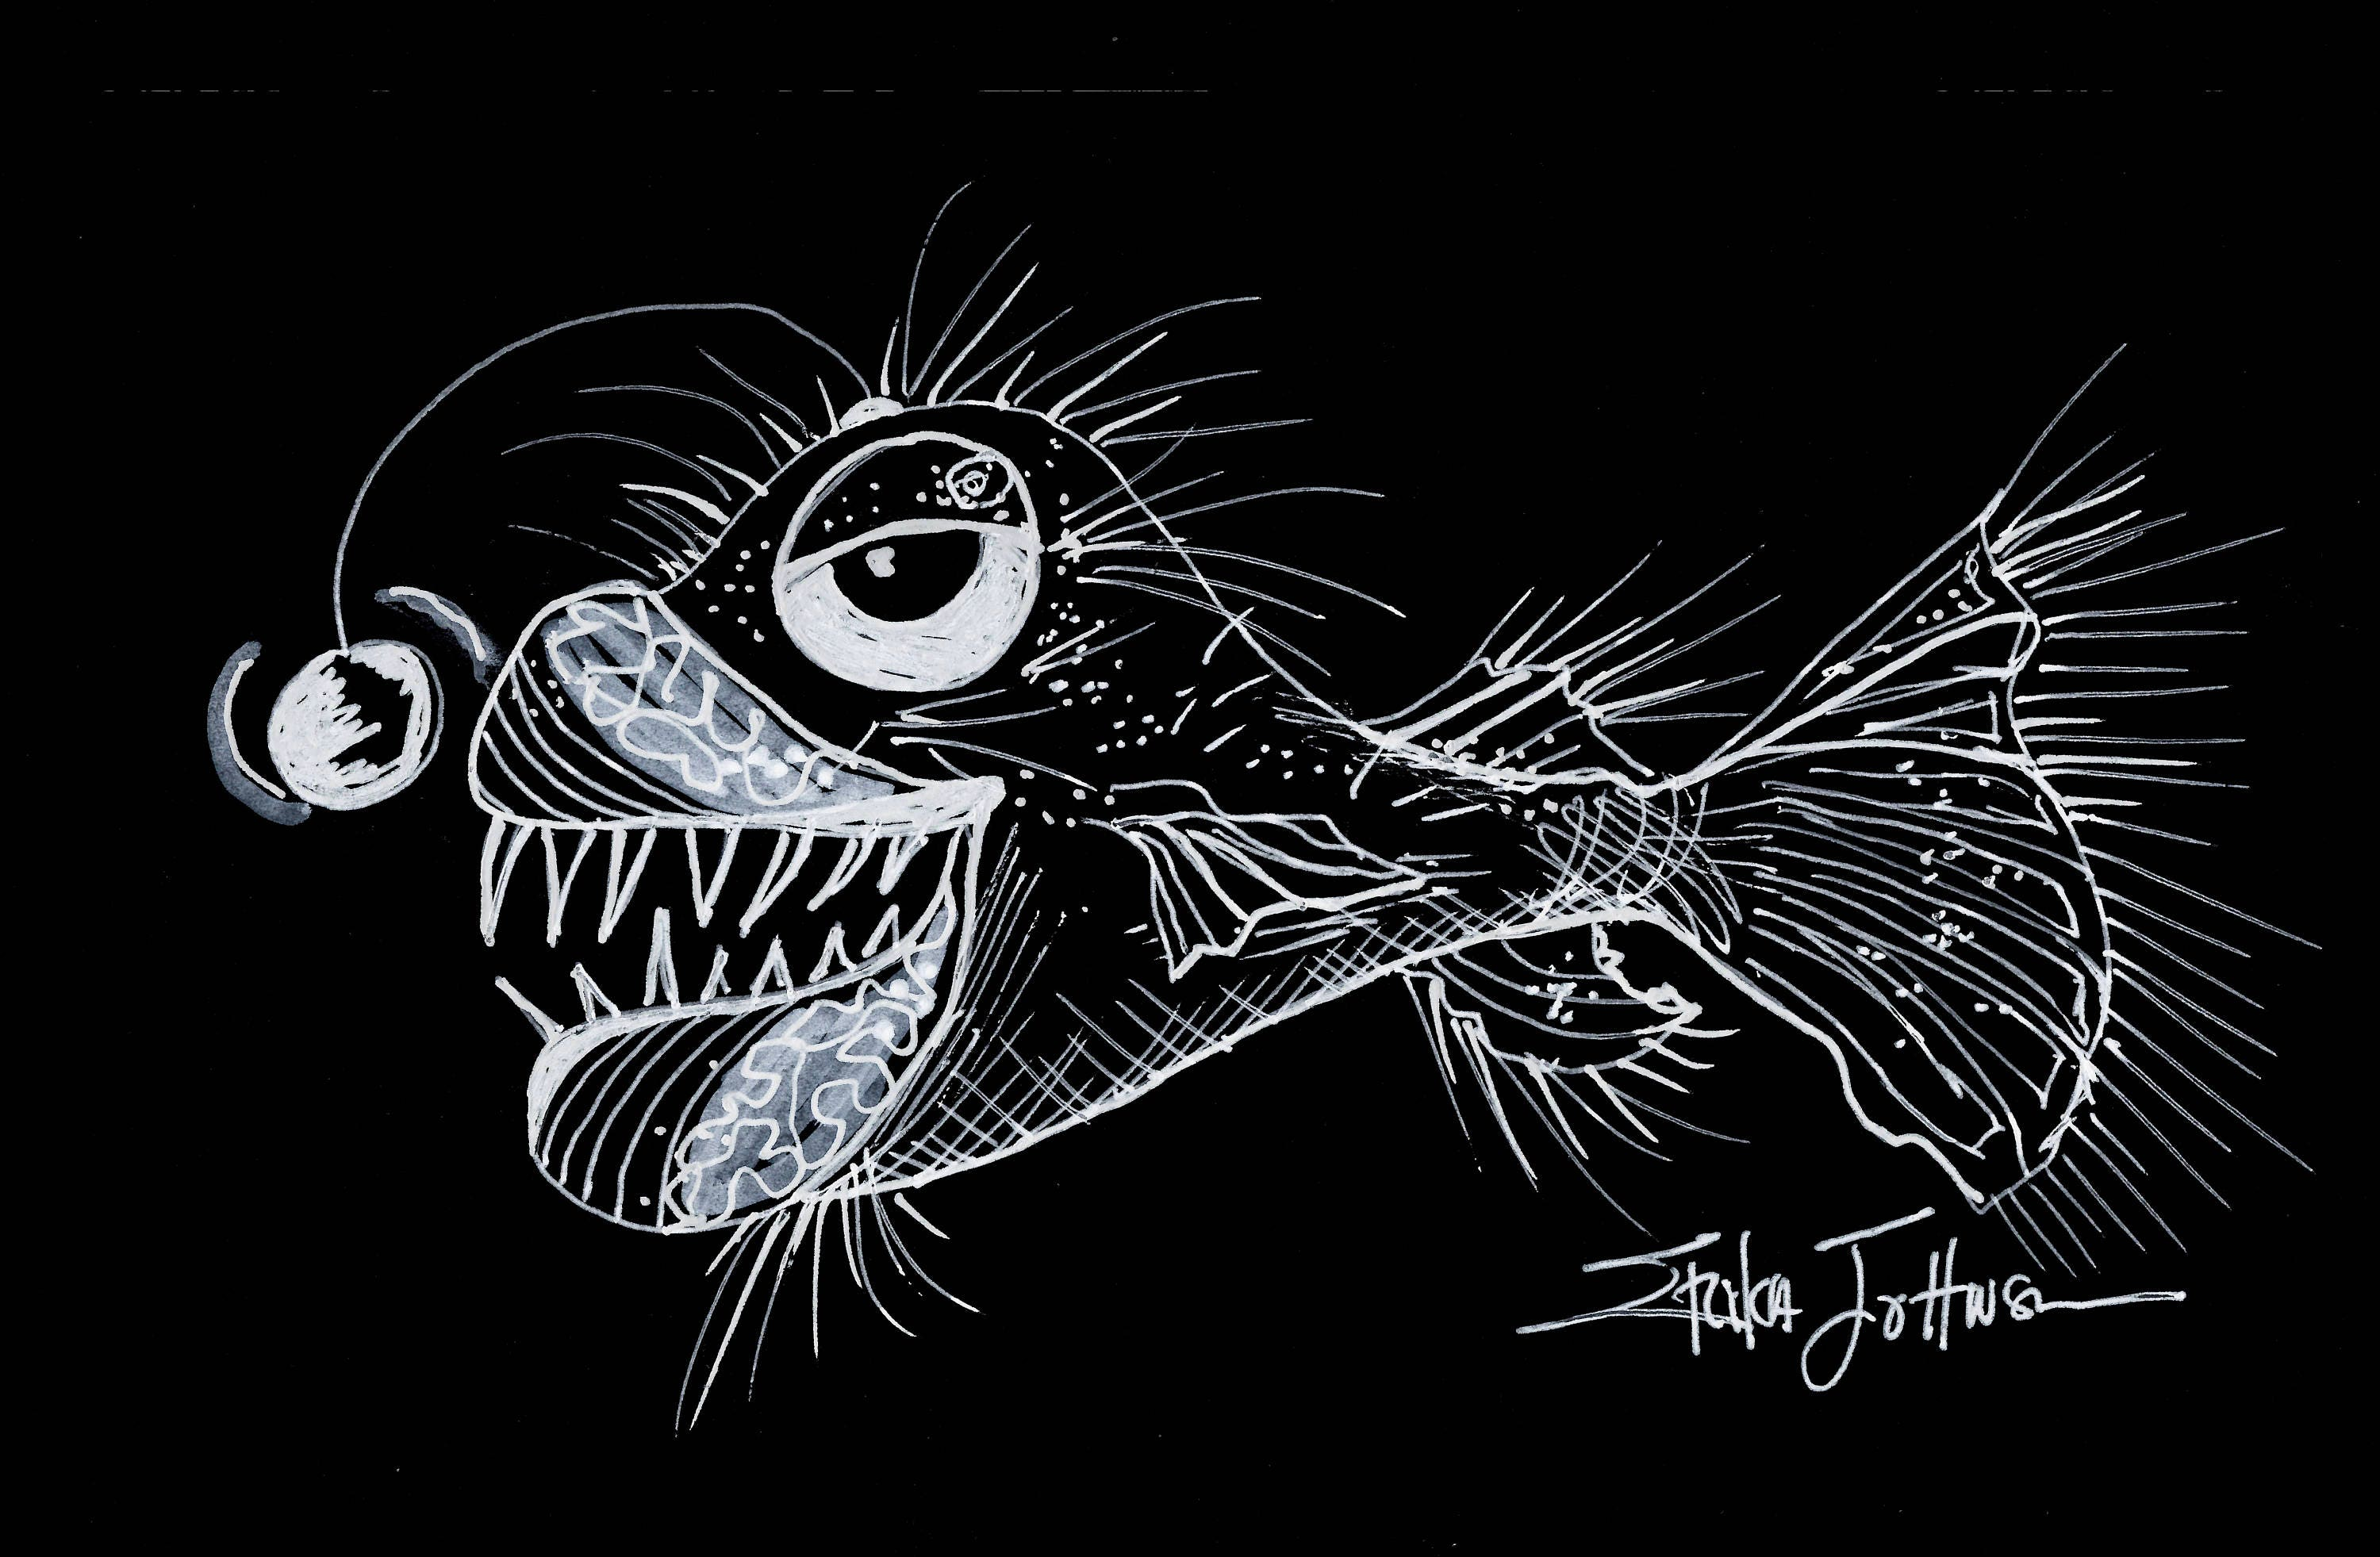 Goofy Lantern Fish Original Pen And Ink Drawing Fish Art Art